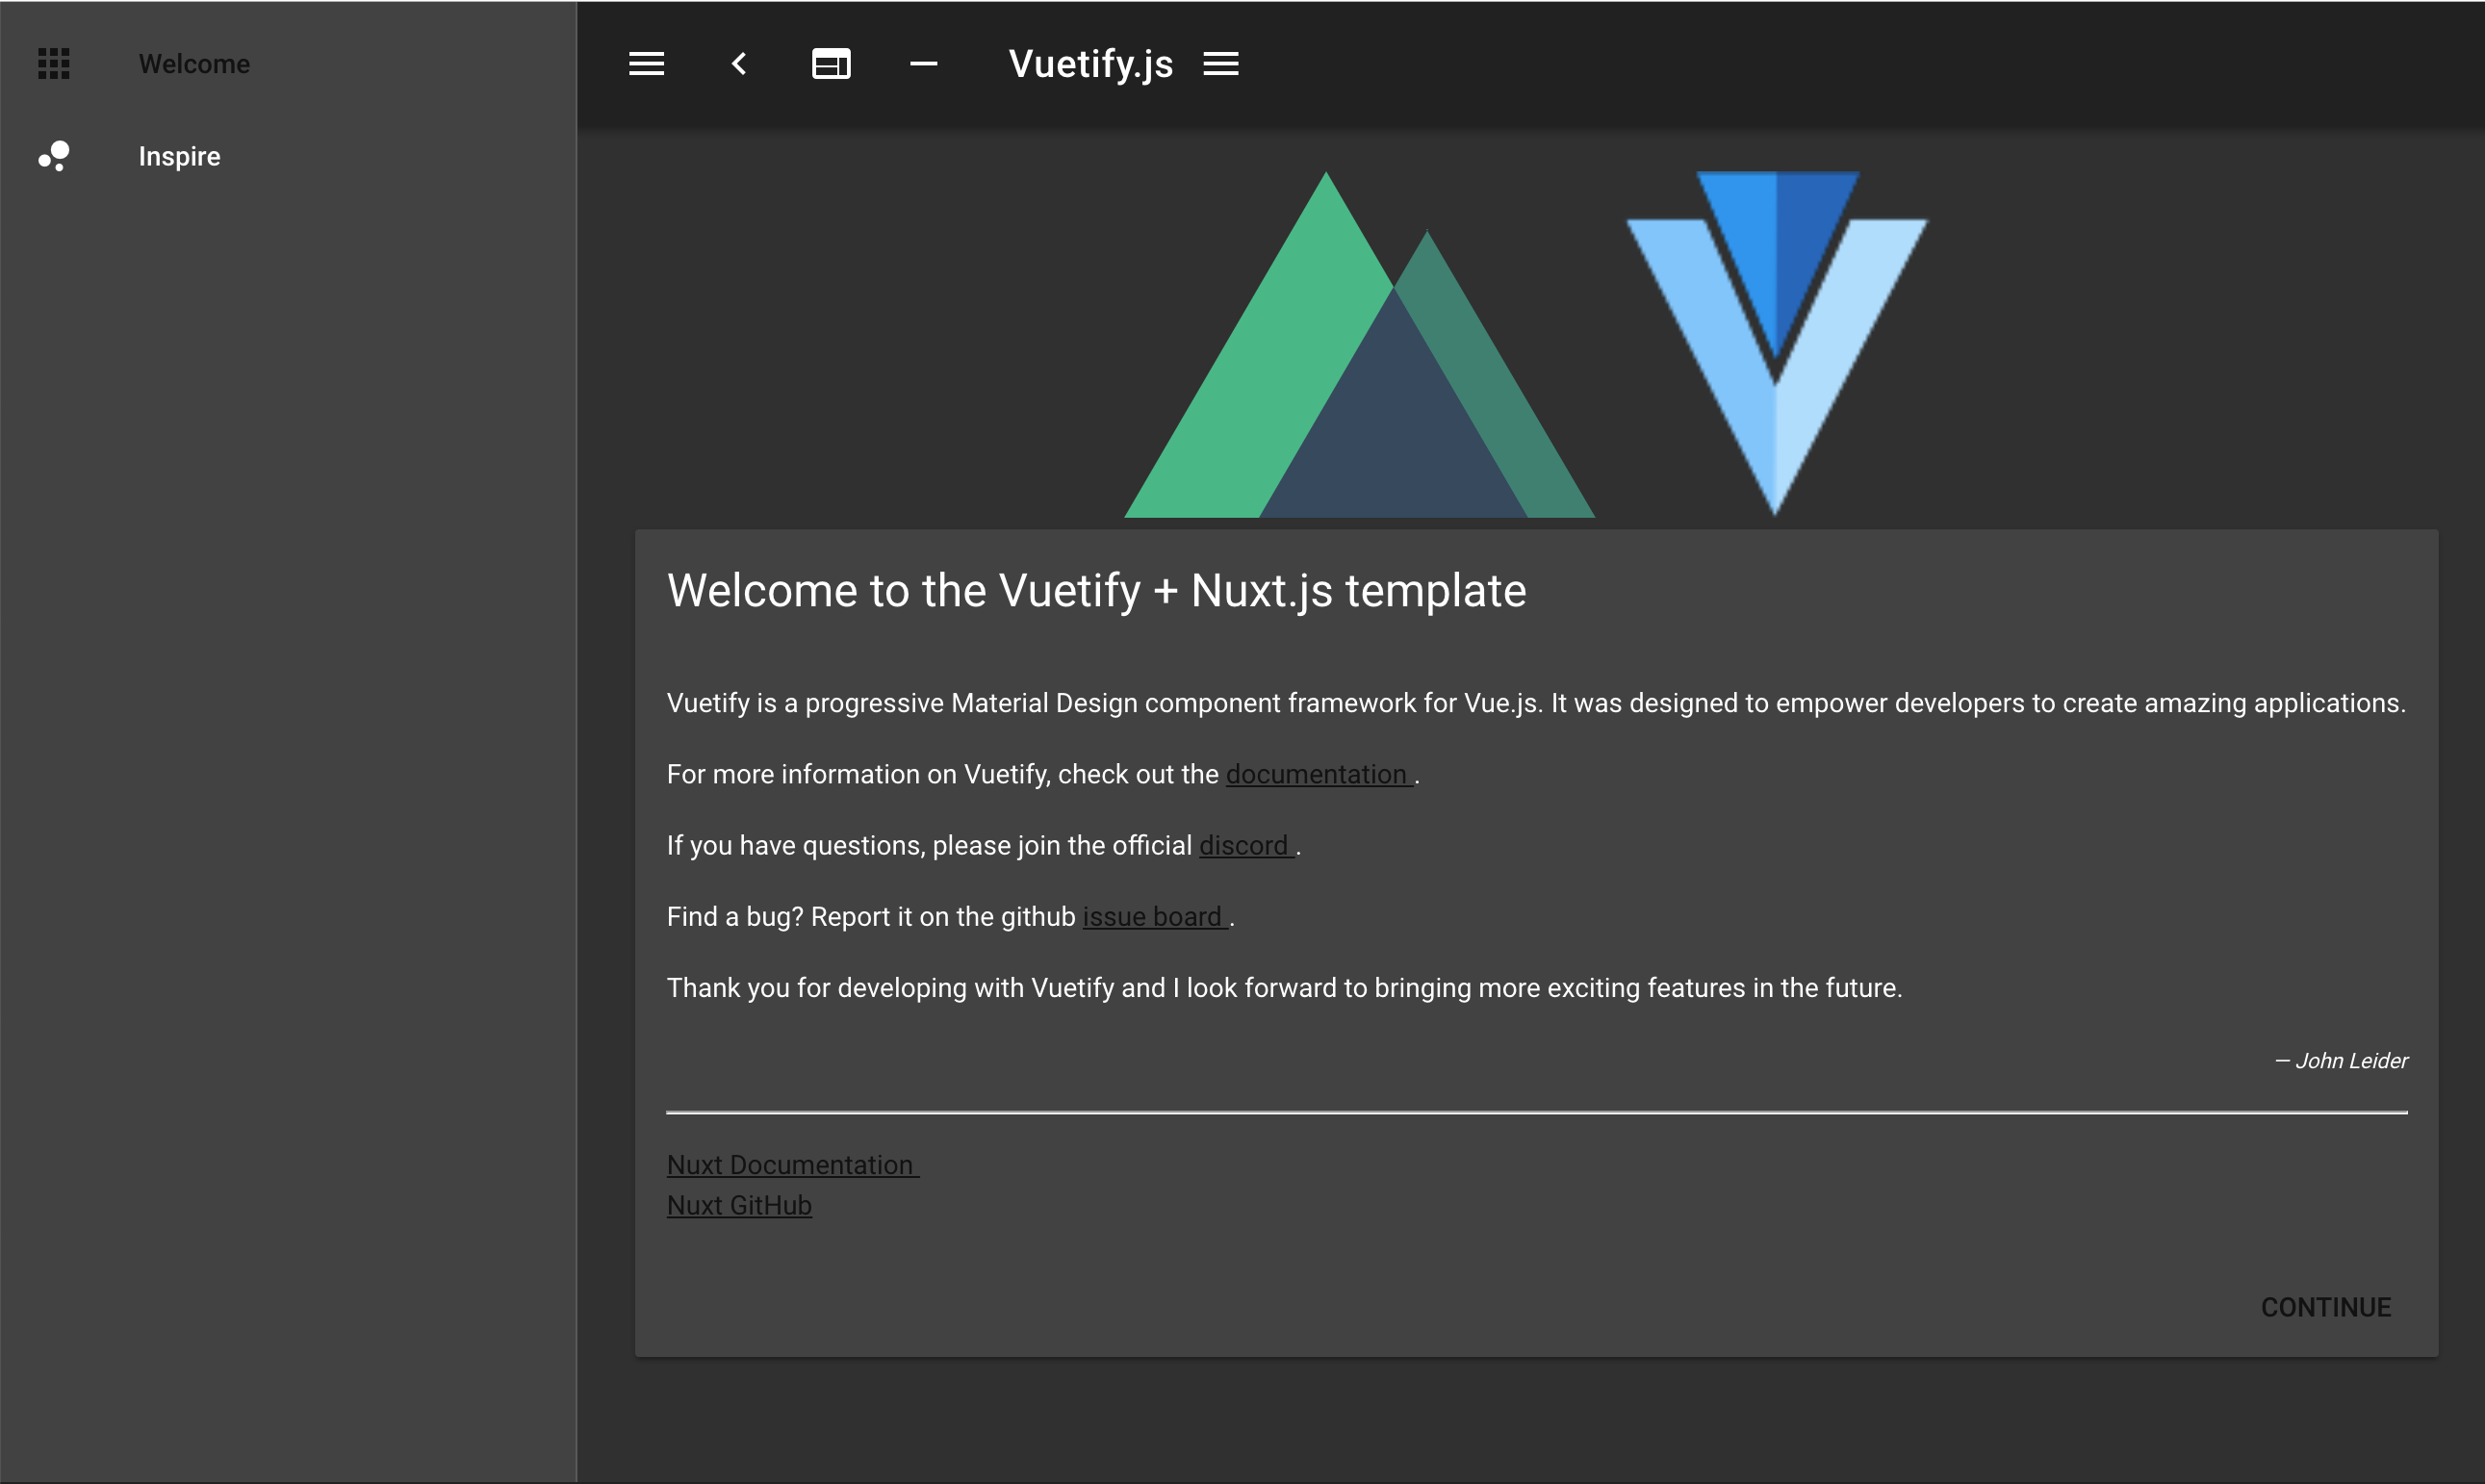 vuetify ui] Default link color doesn't contrast with